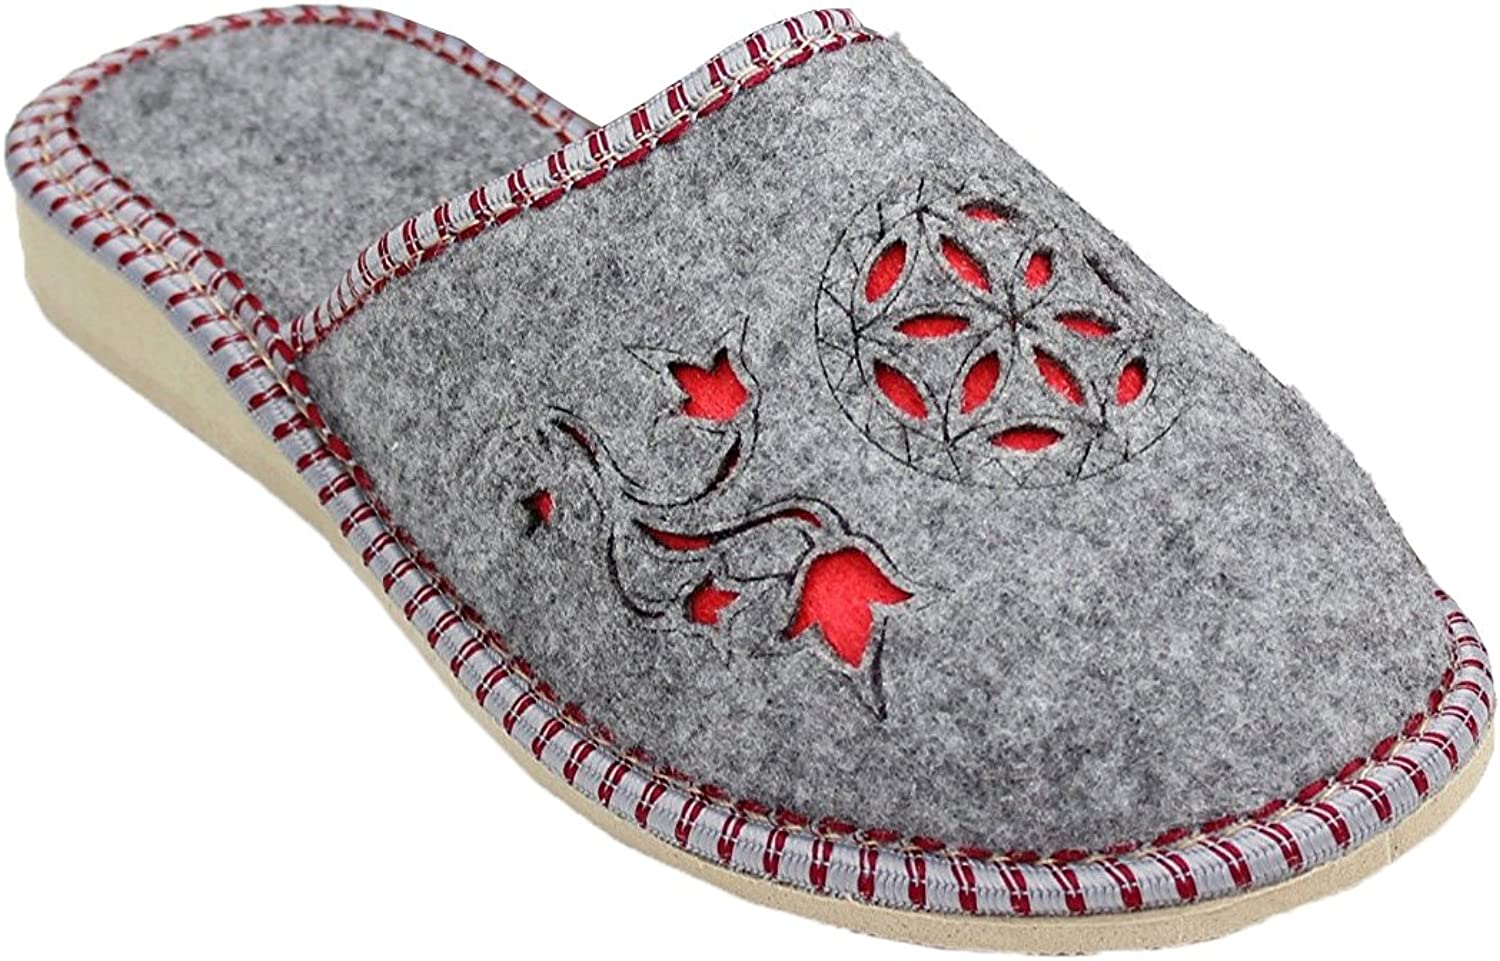 Genuine Leather Slippers Orthopedic Insole  91